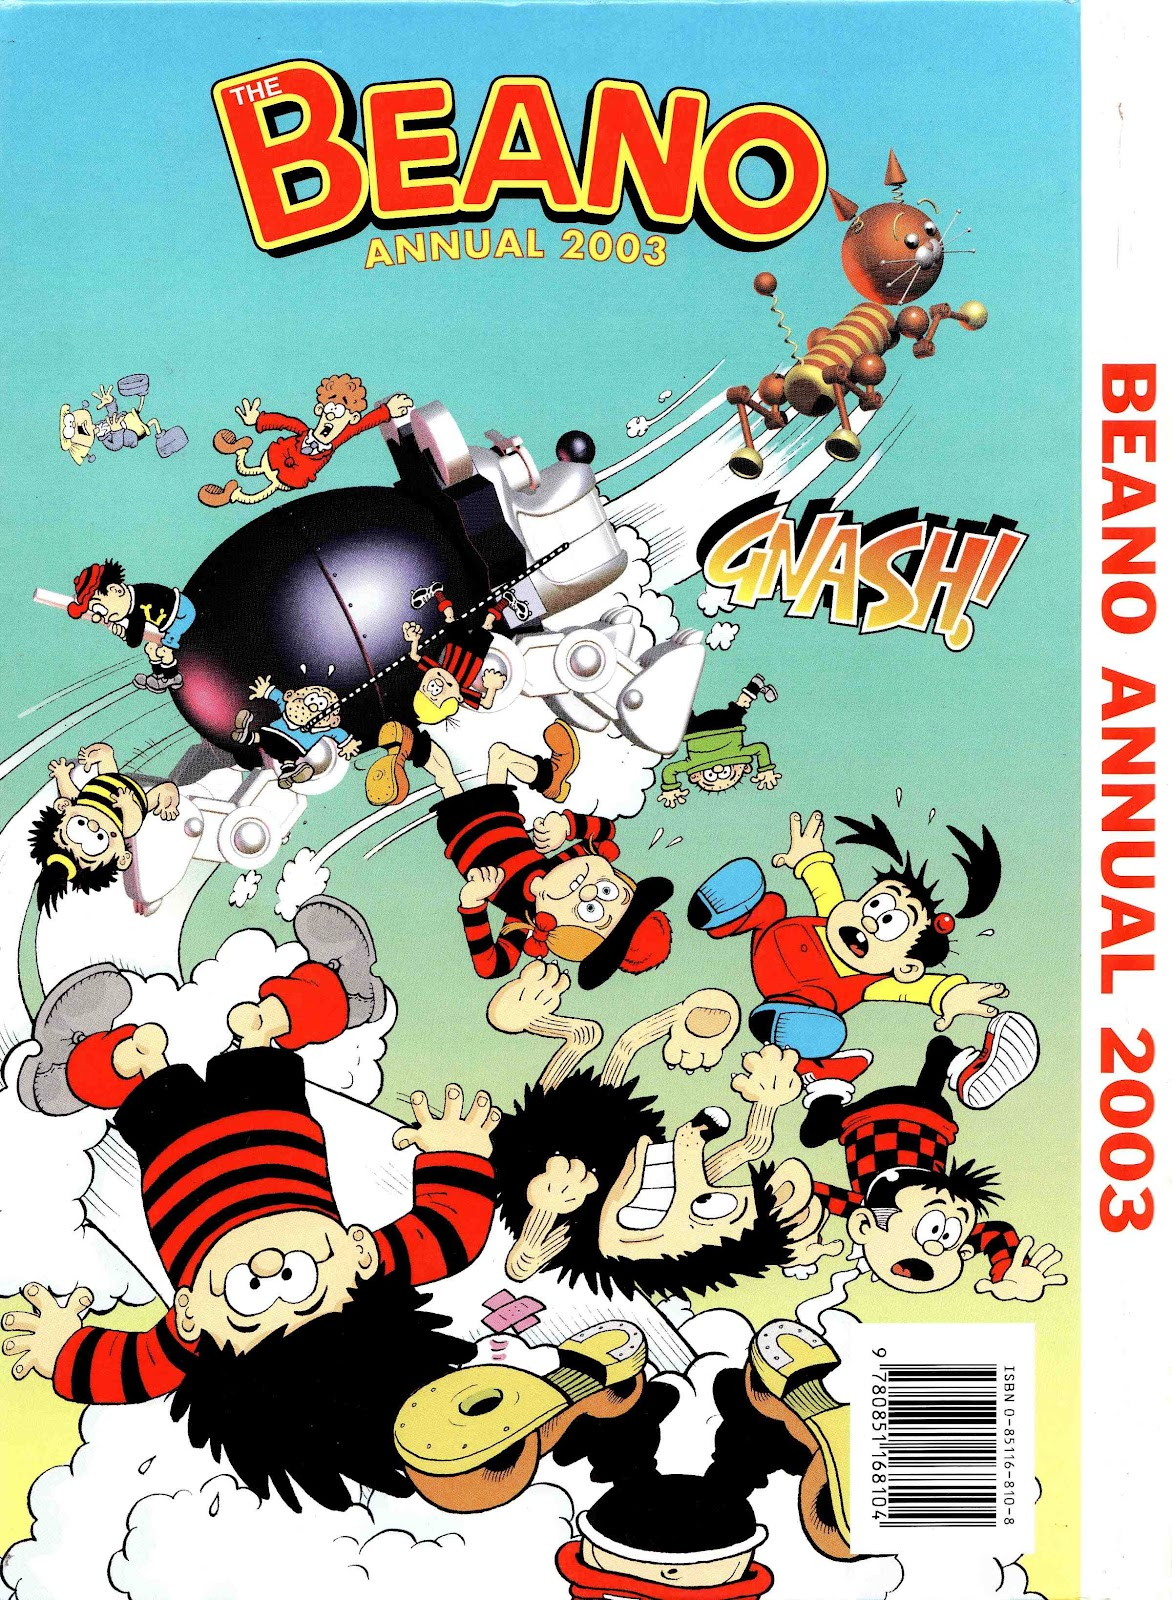 The Beano Book (Annual) 2003 Page 144